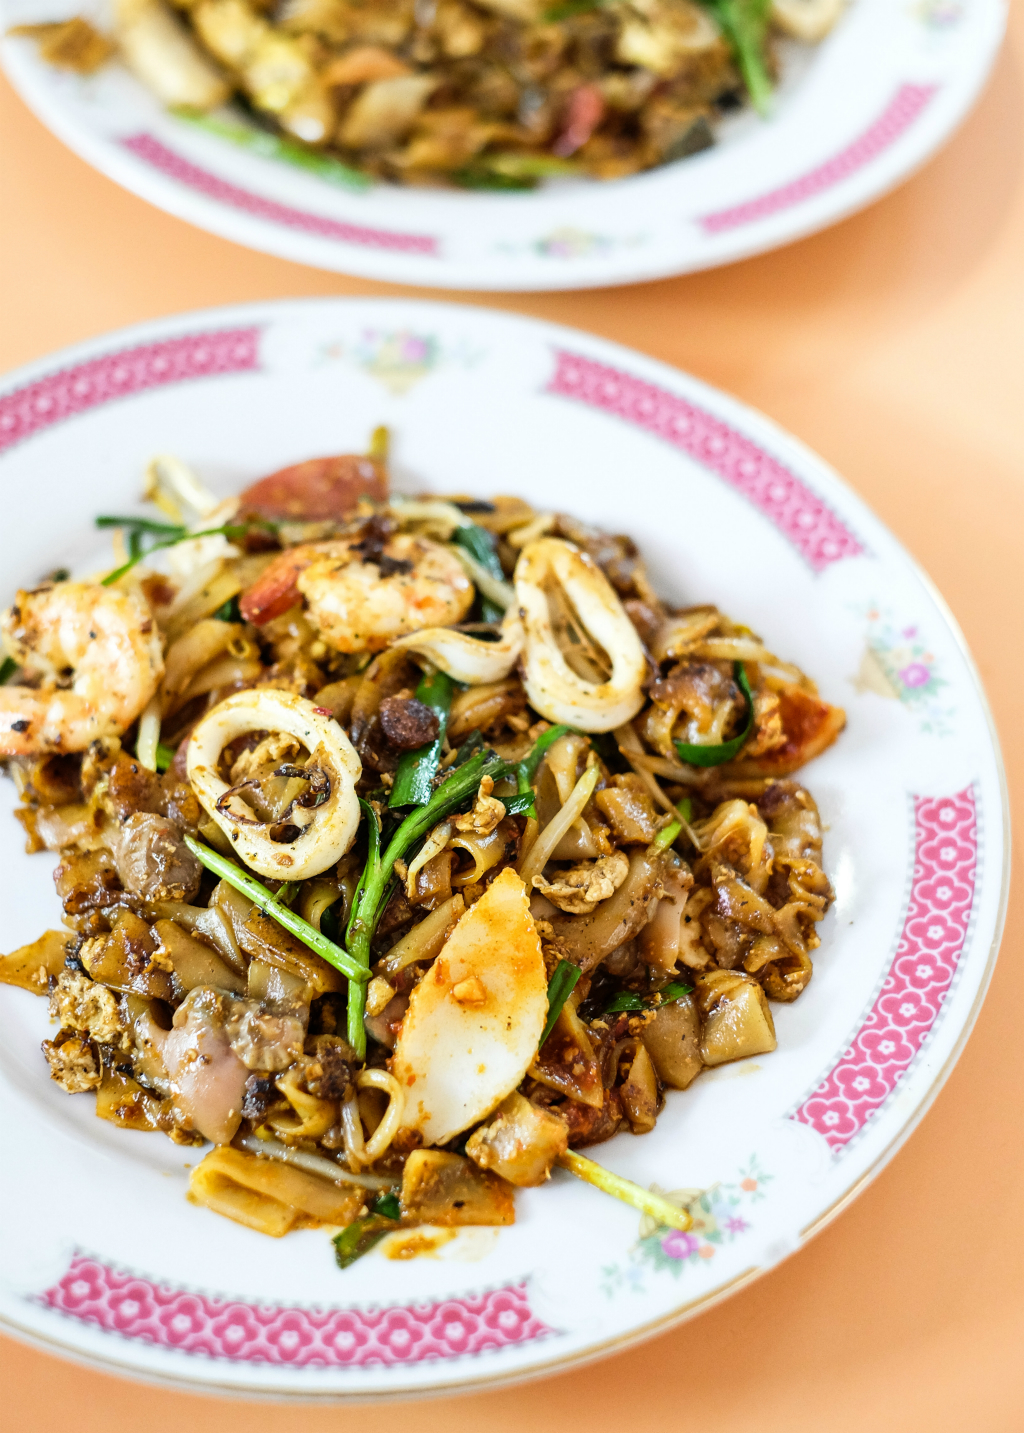 Dong Ji's Fried Kway Teow in a Plate